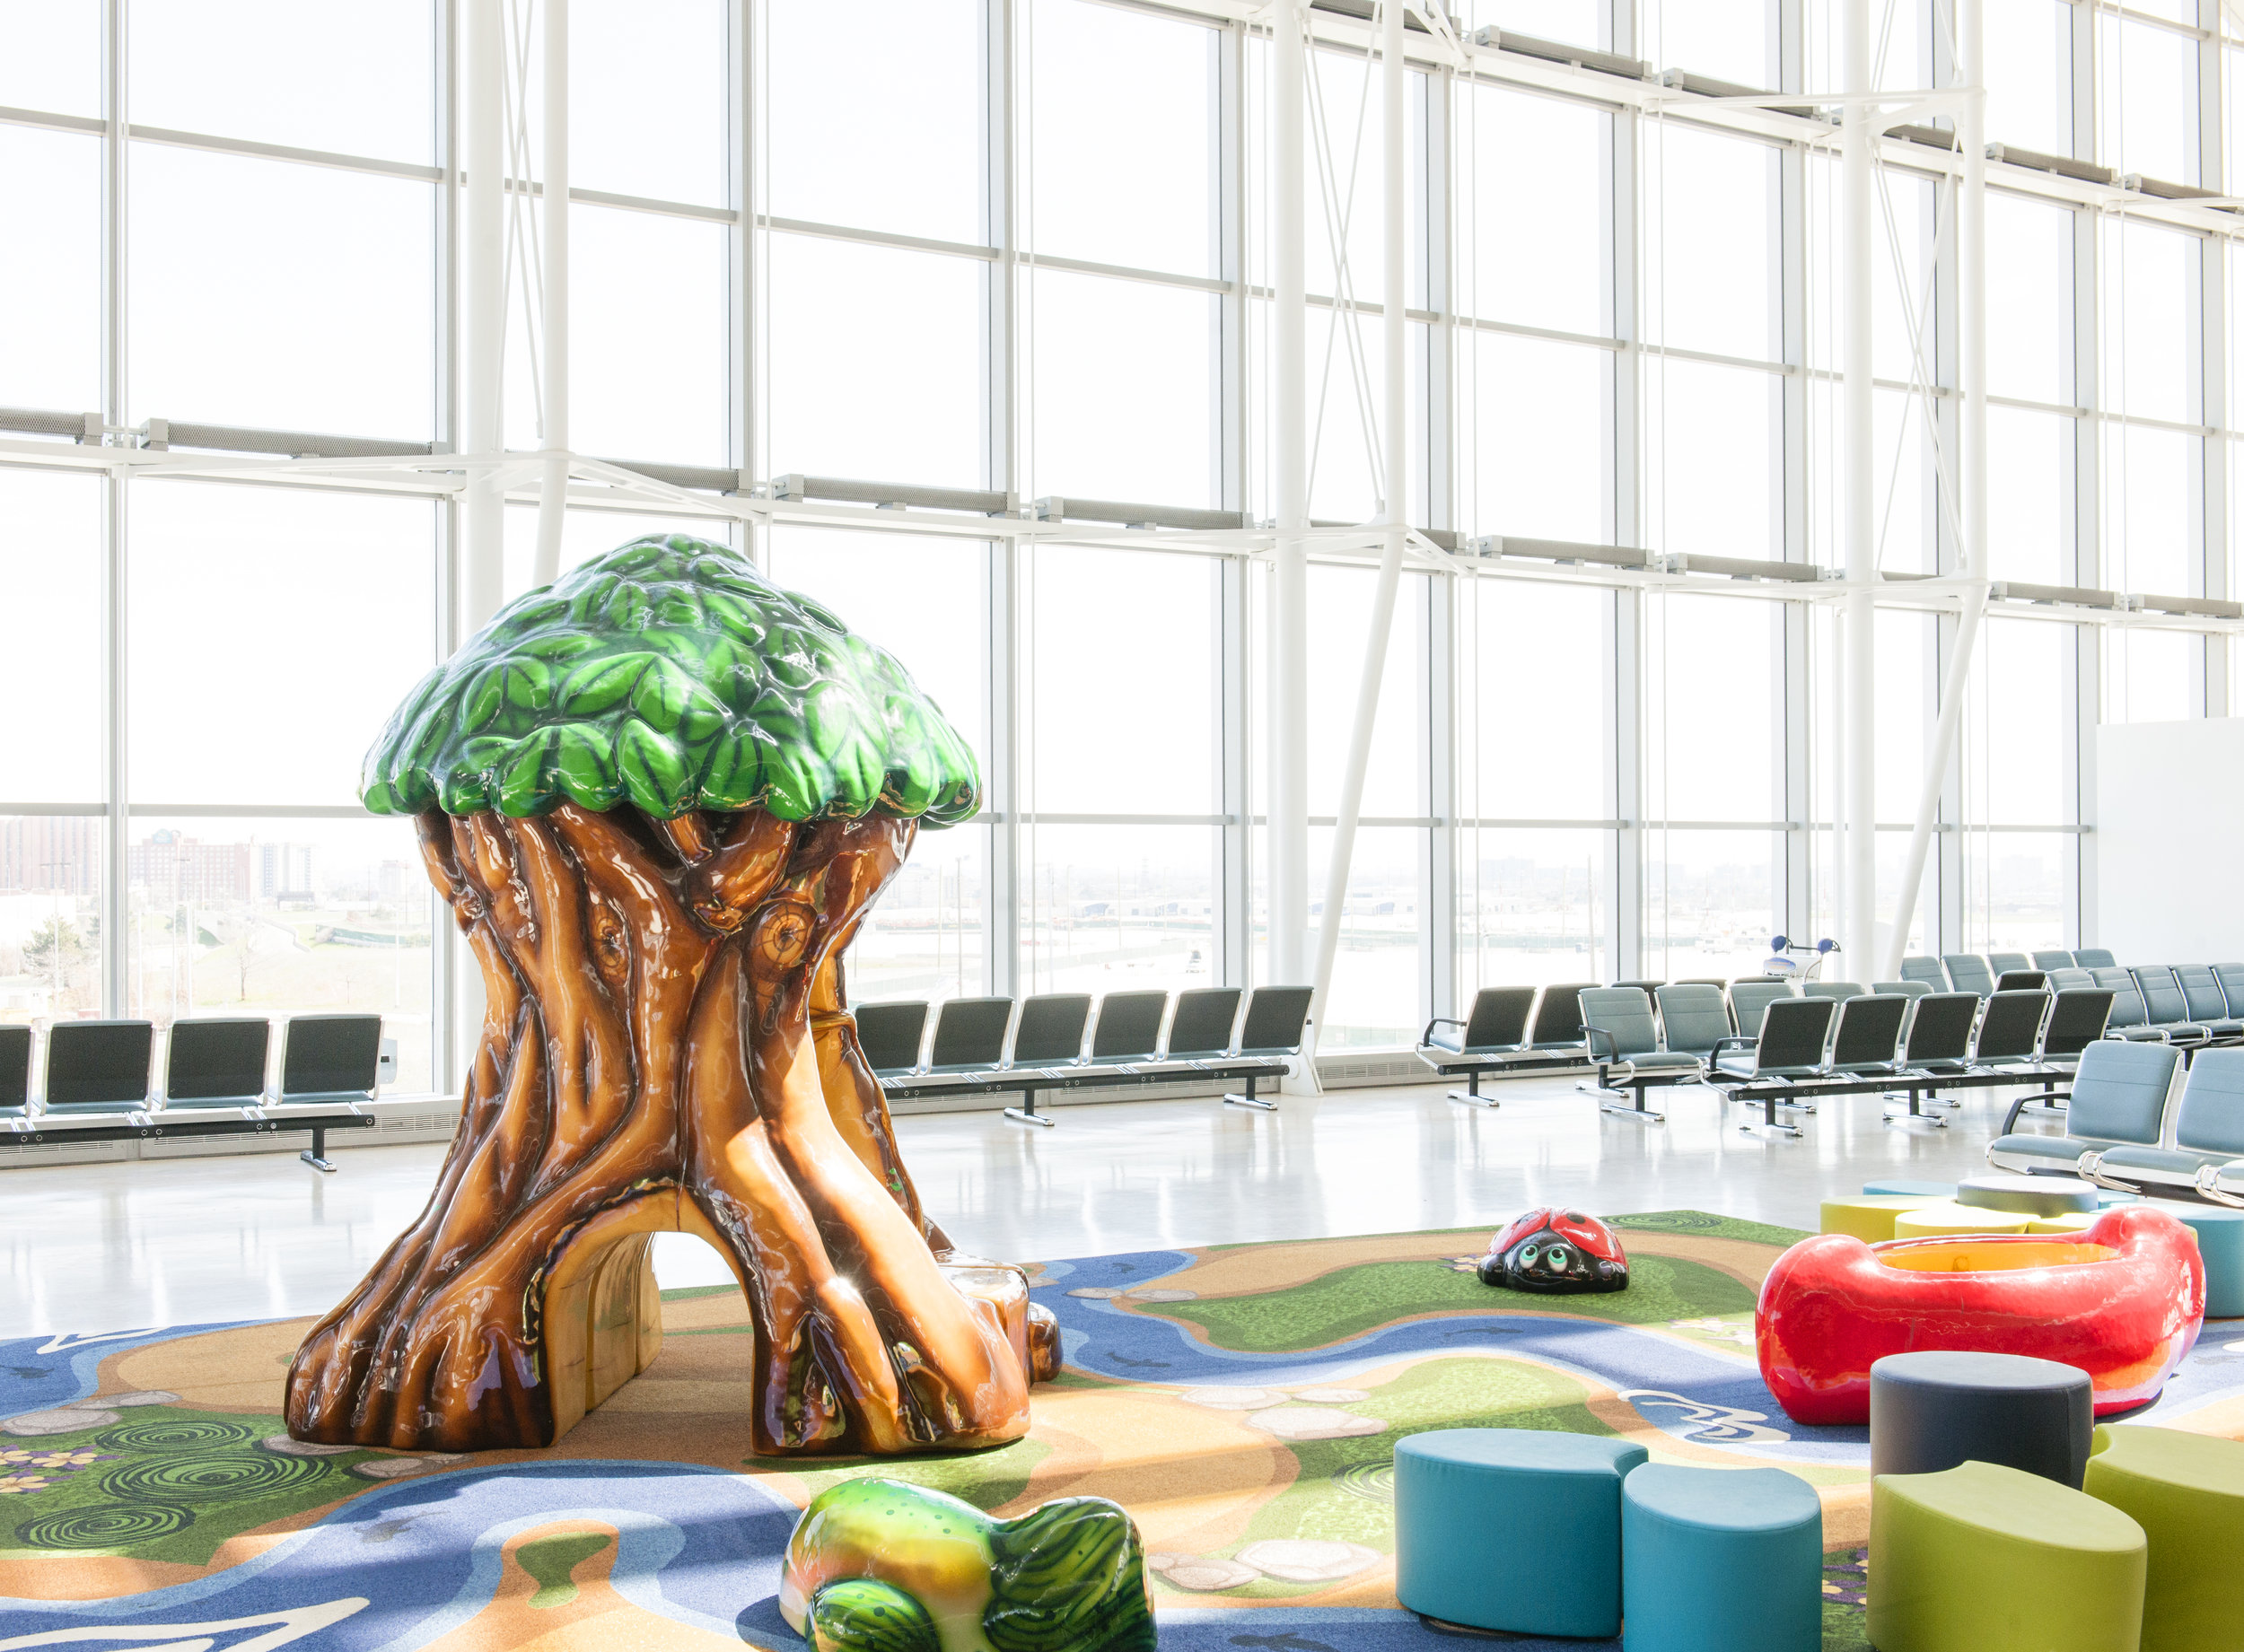 Airport The Laird Co Pearson Airport Childrens Lounge Aviation Avgeek Architecture Interior Design Play Photography.jpg